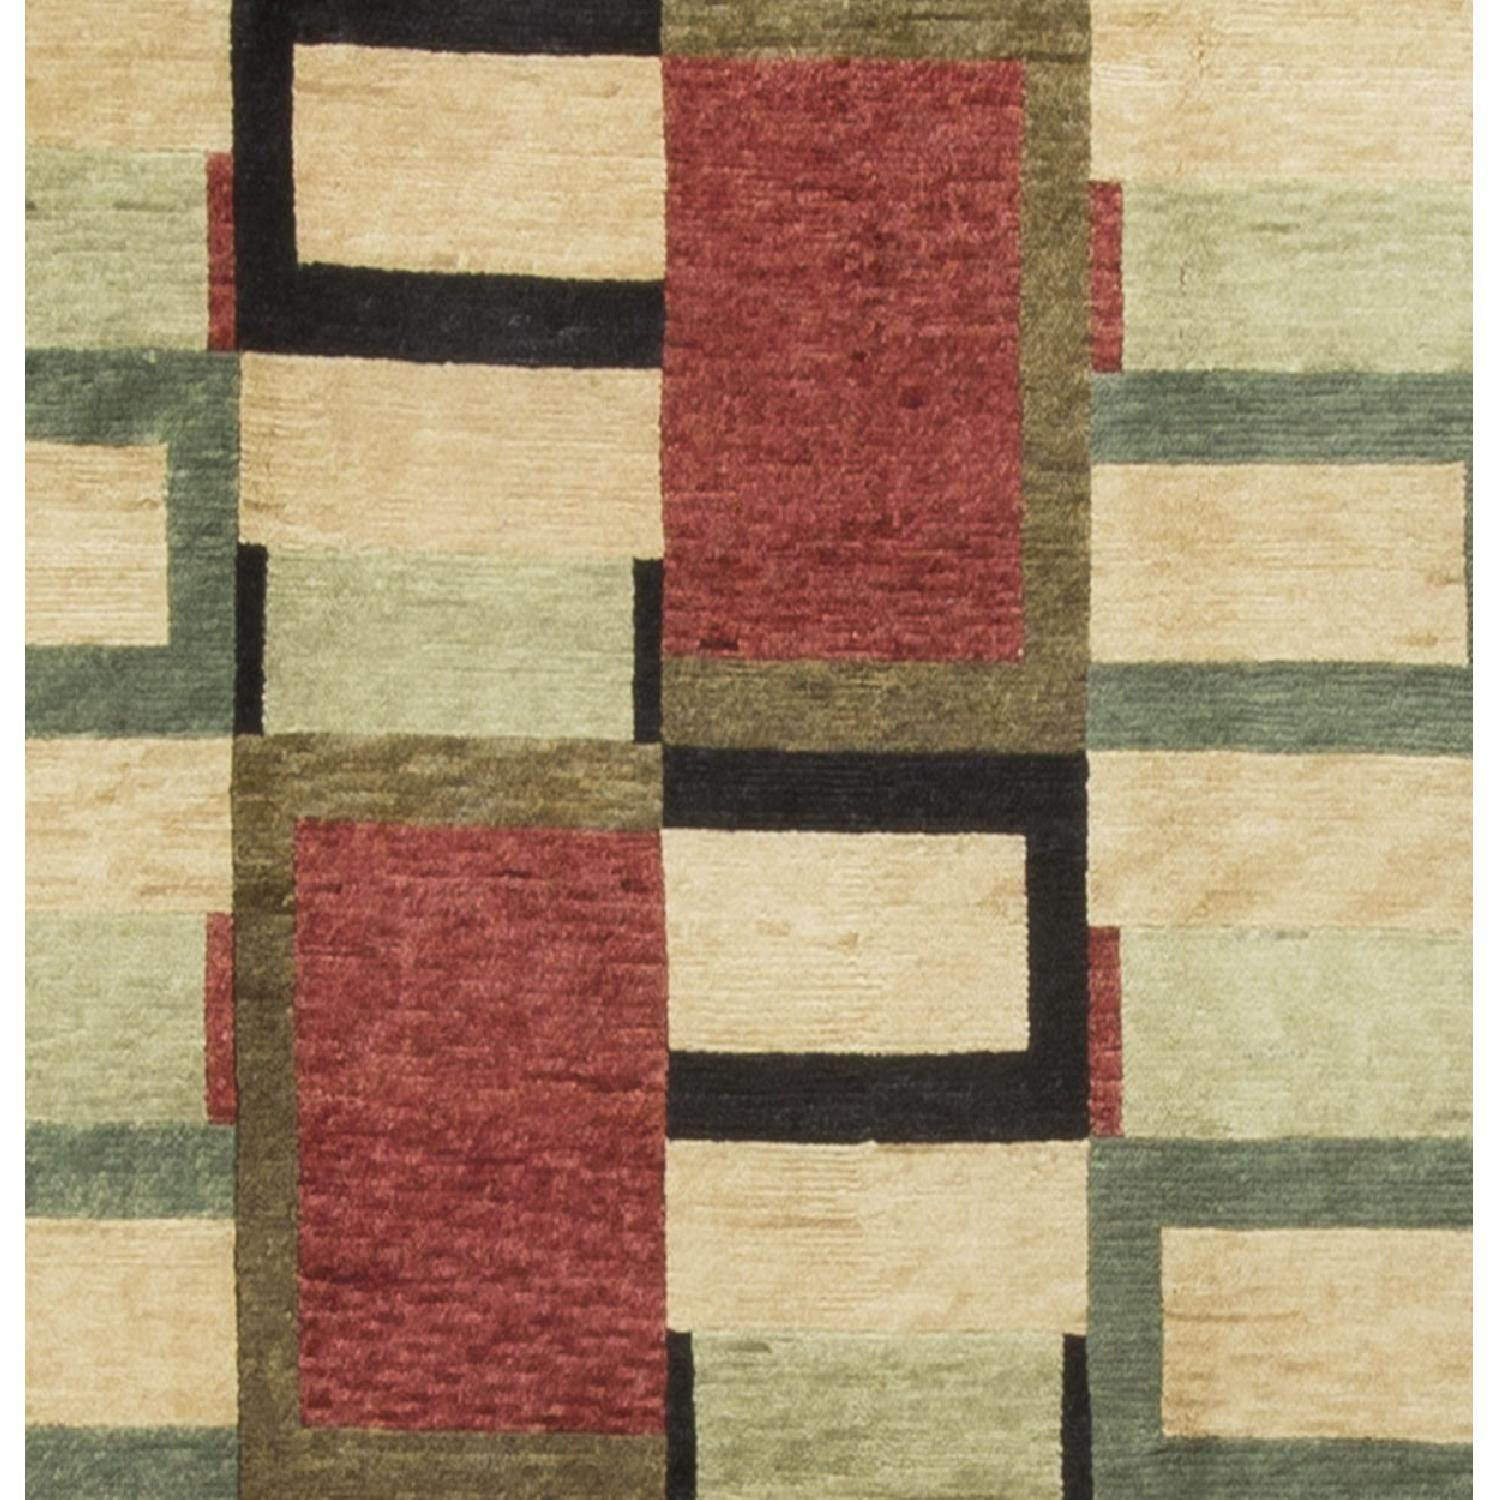 Modern Contemporary Hand Knotted Wool Rug in Red/Black/Beige - image-2